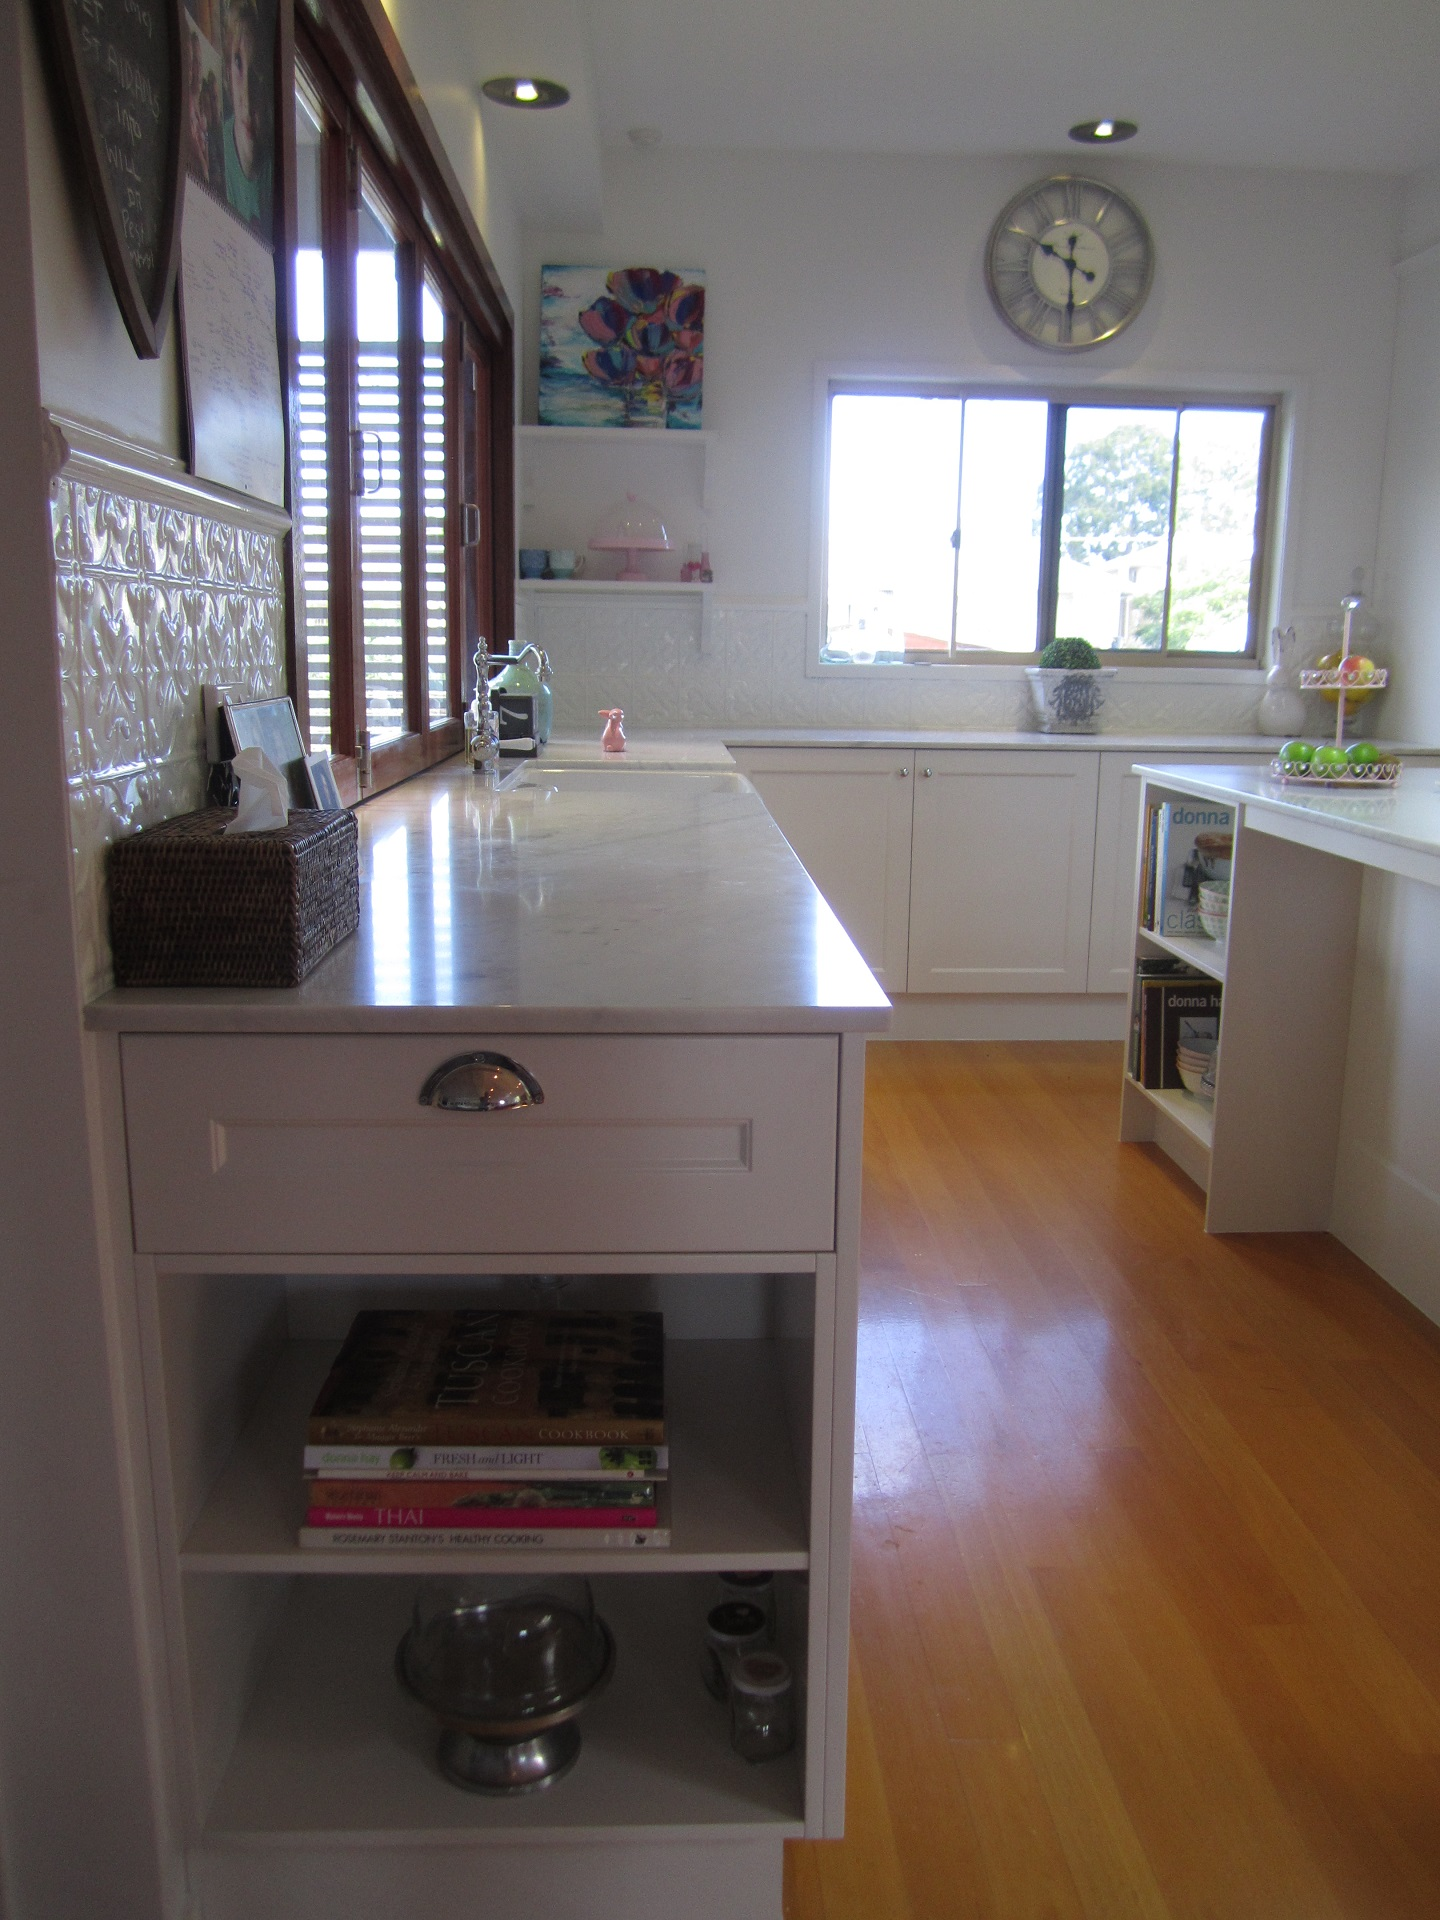 Brisbane Kitchen Design Garate Graceville Traditional KitchenRenovation (7)